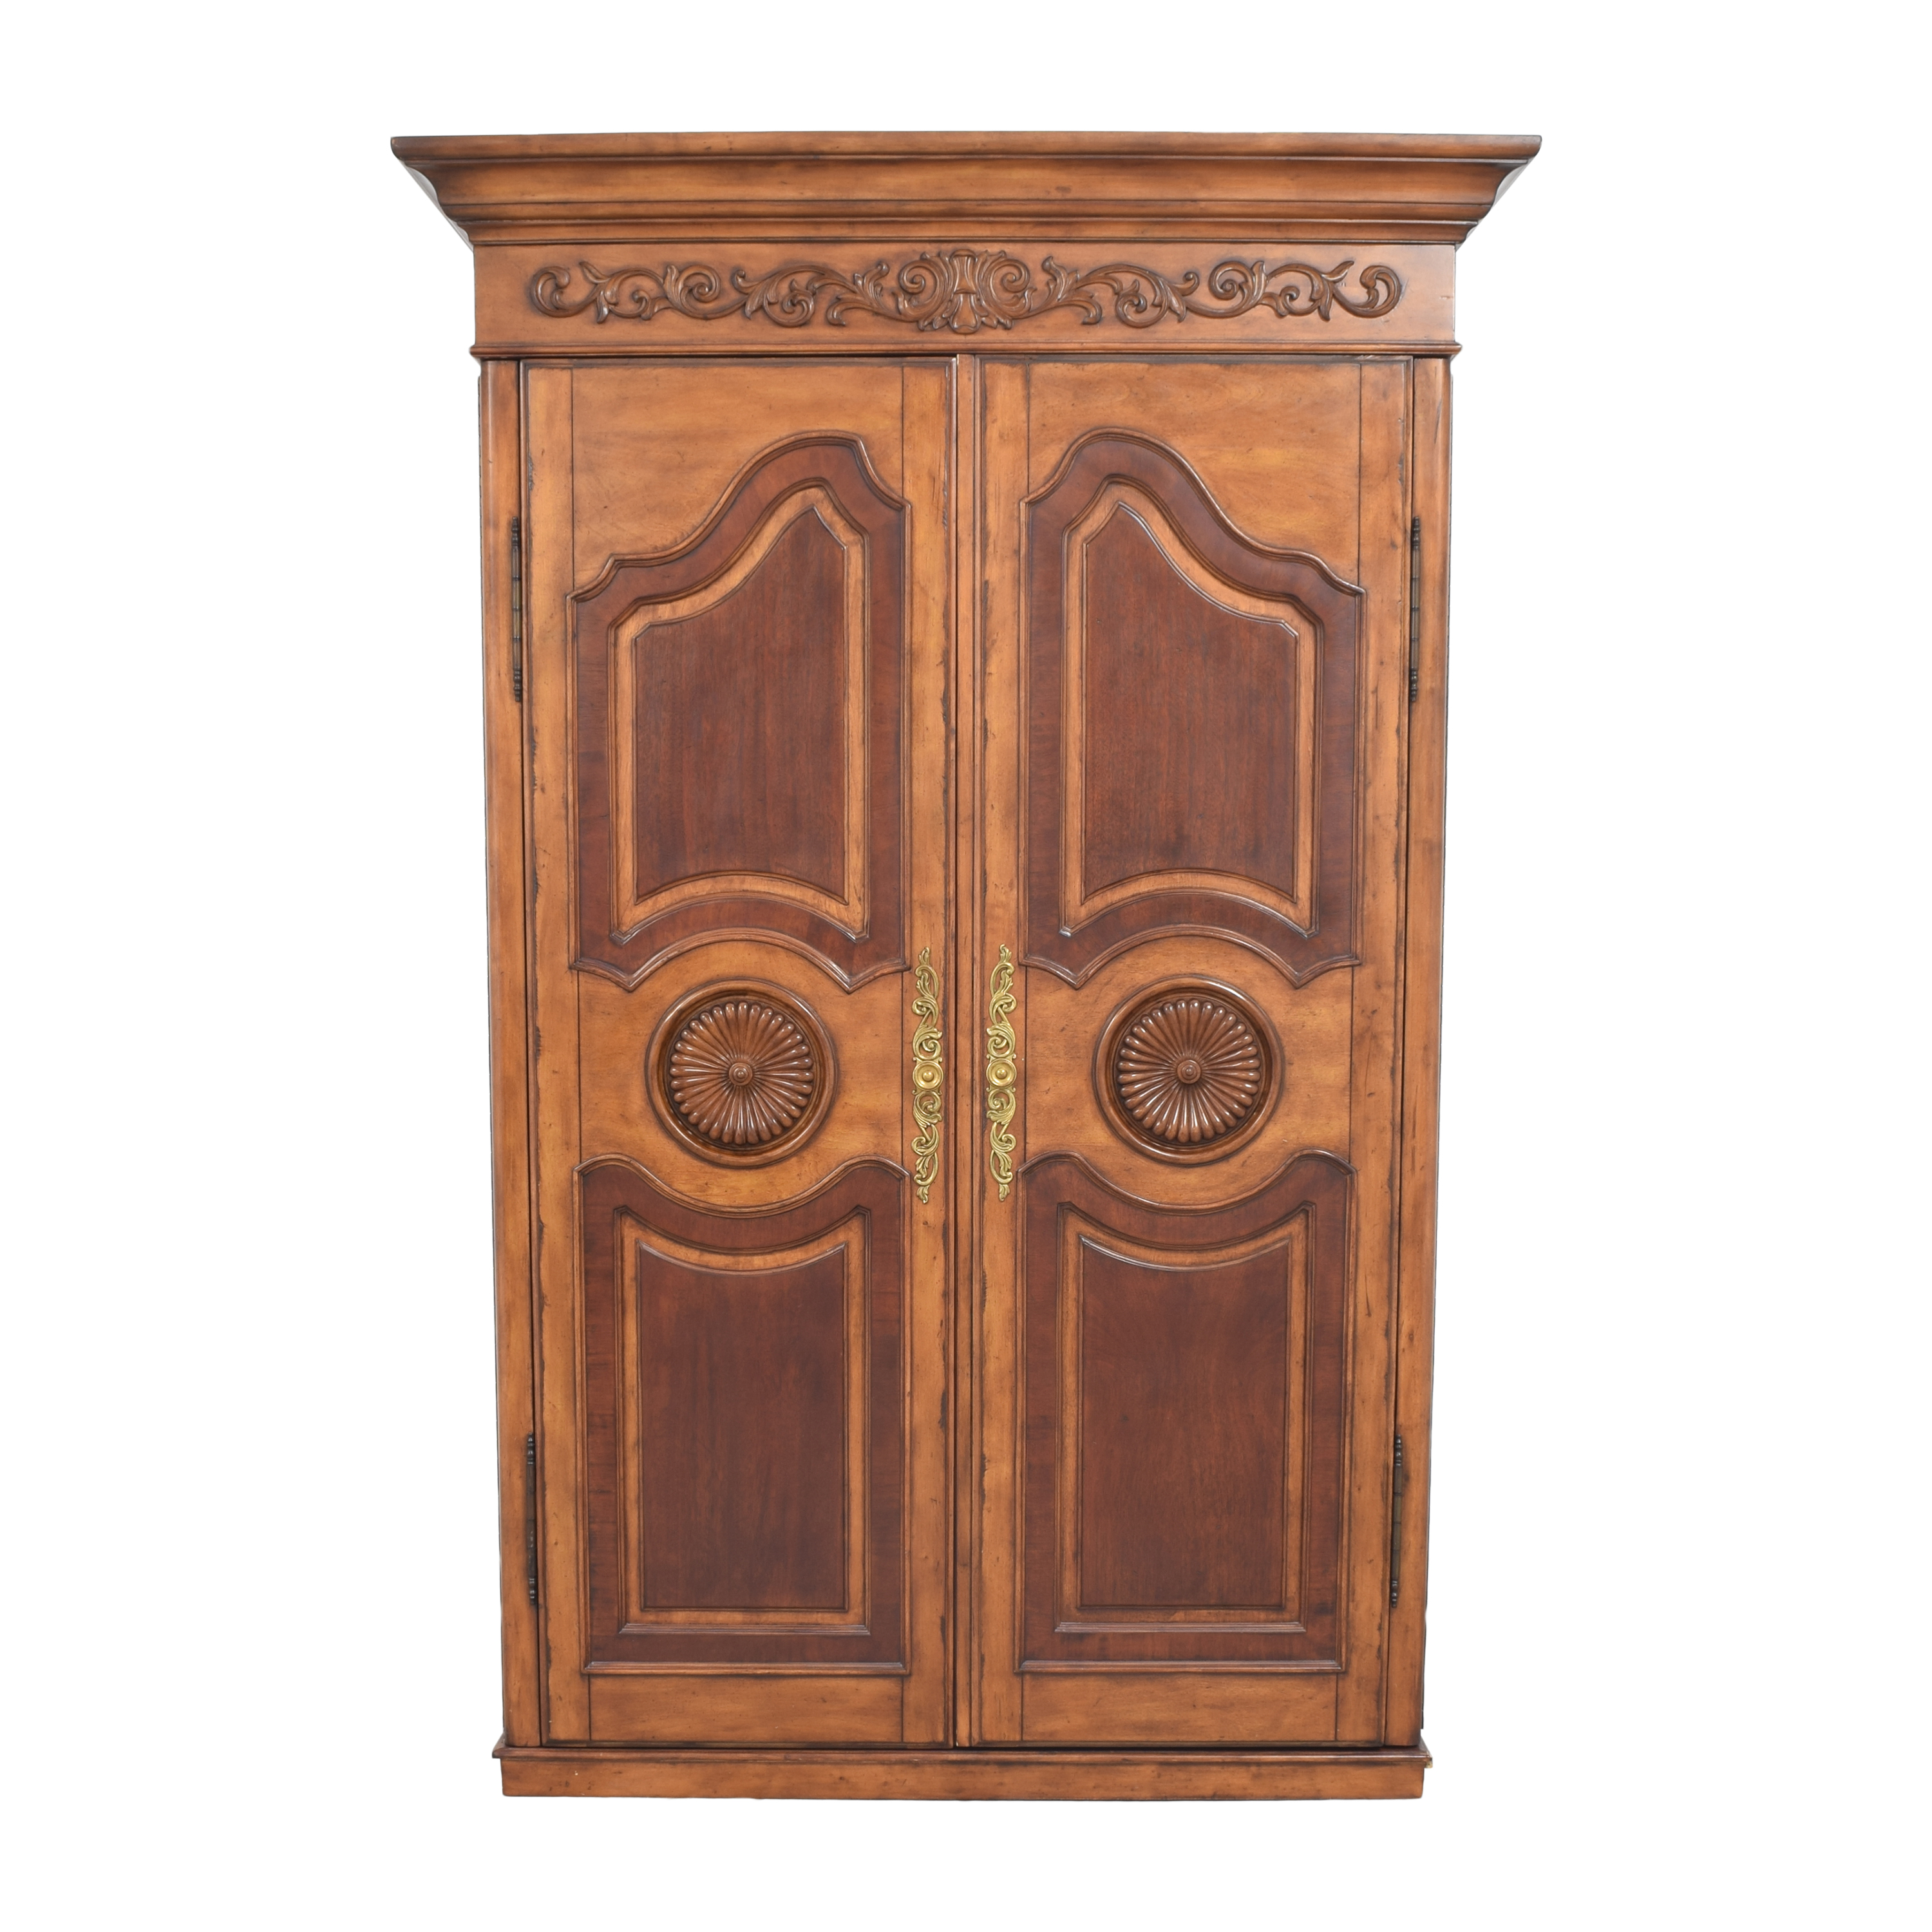 Hooker Furniture Hooker Furniture Seven Seas Bar Cabinet Cabinets & Sideboards